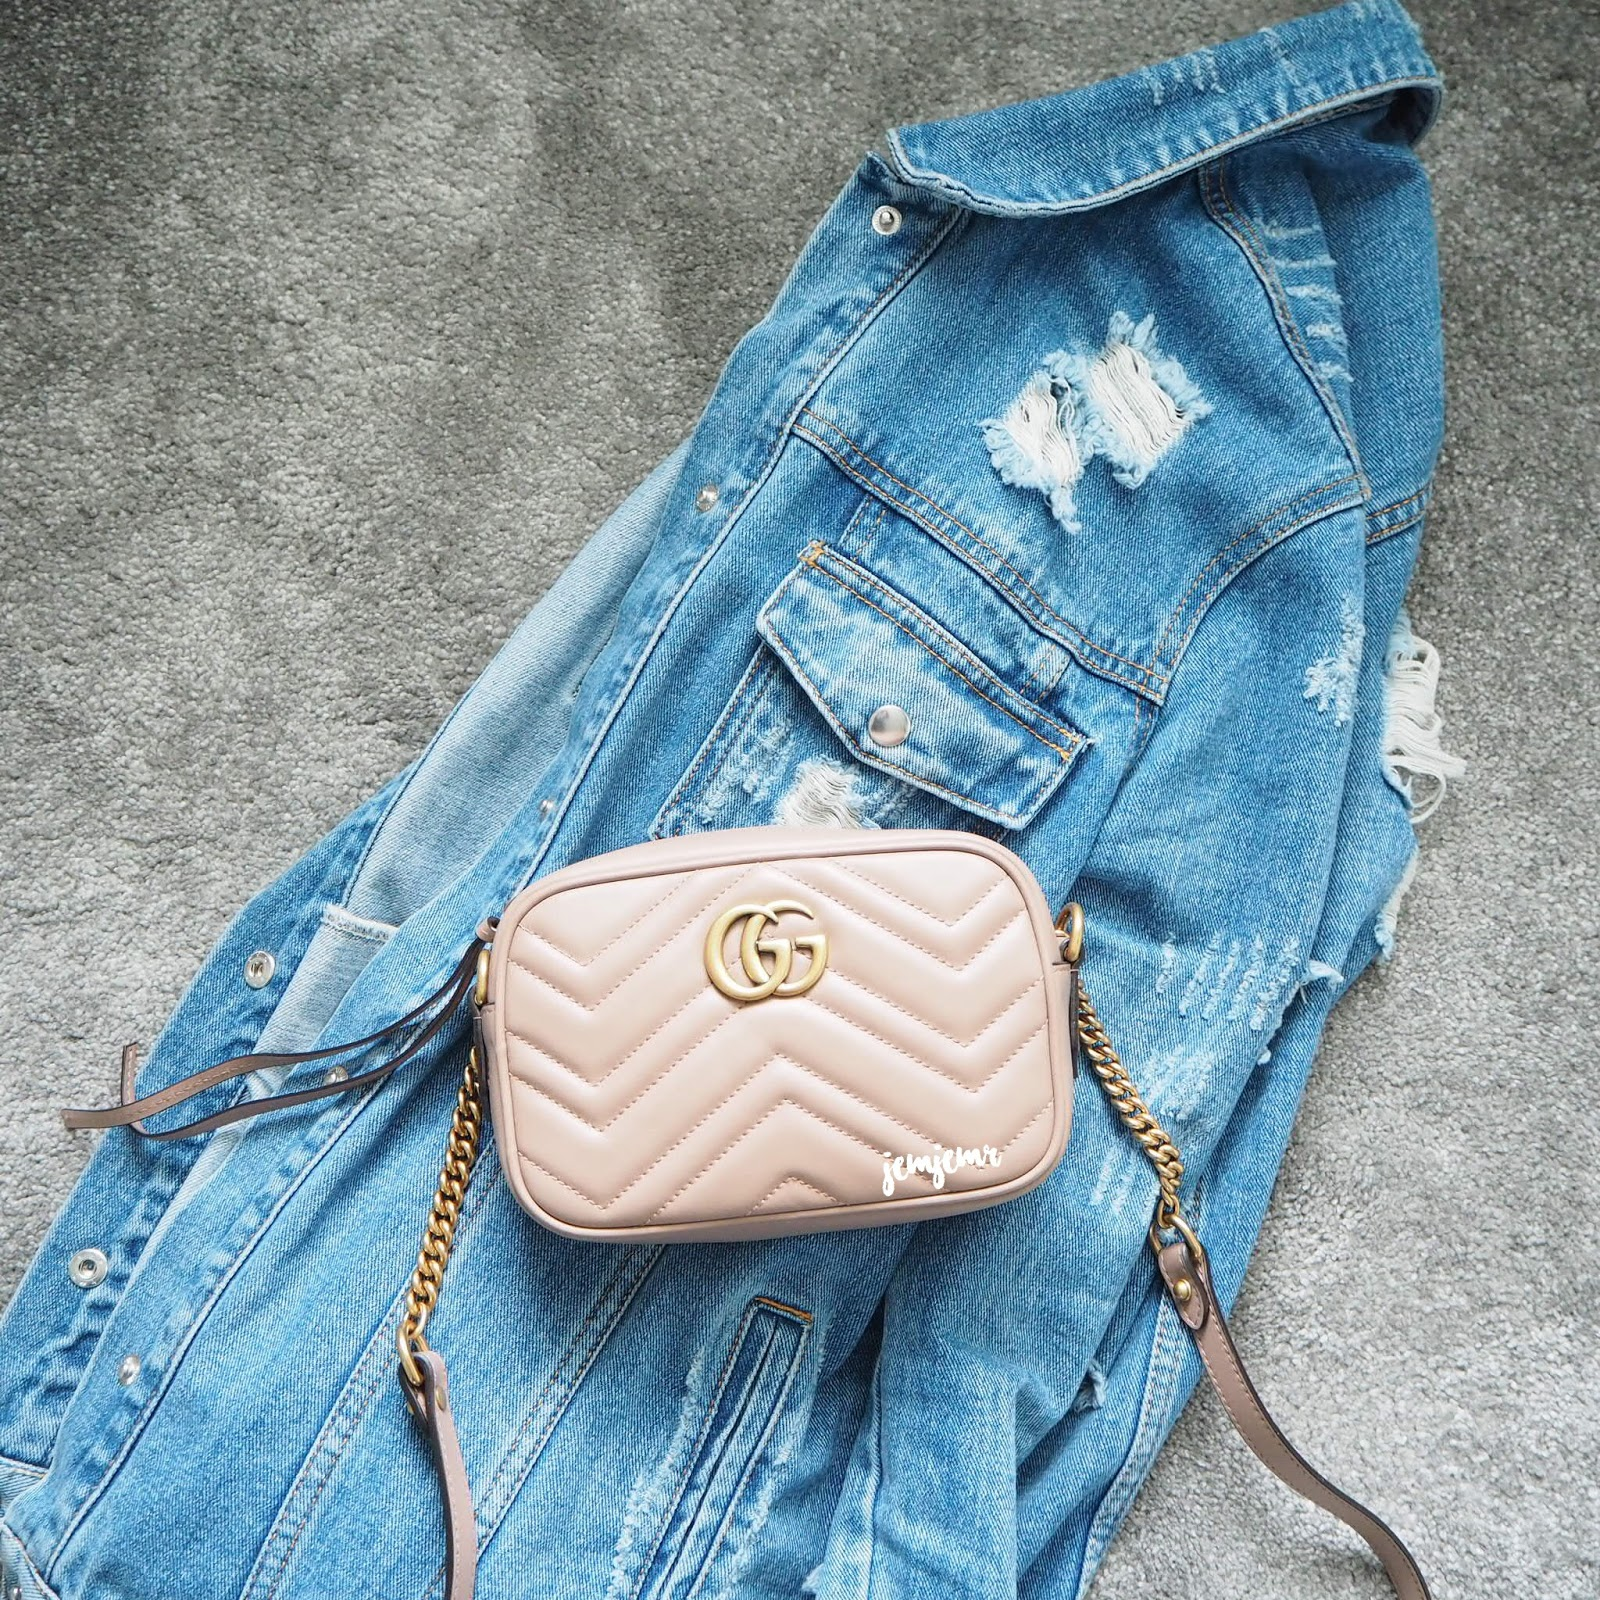 0369ce70186962 Gucci Mini Marmont Matelasse Bag. This bag is so friggin cute!! I was lucky  enough to buy this bag at Heathrow T3 before the price increase in  September ...